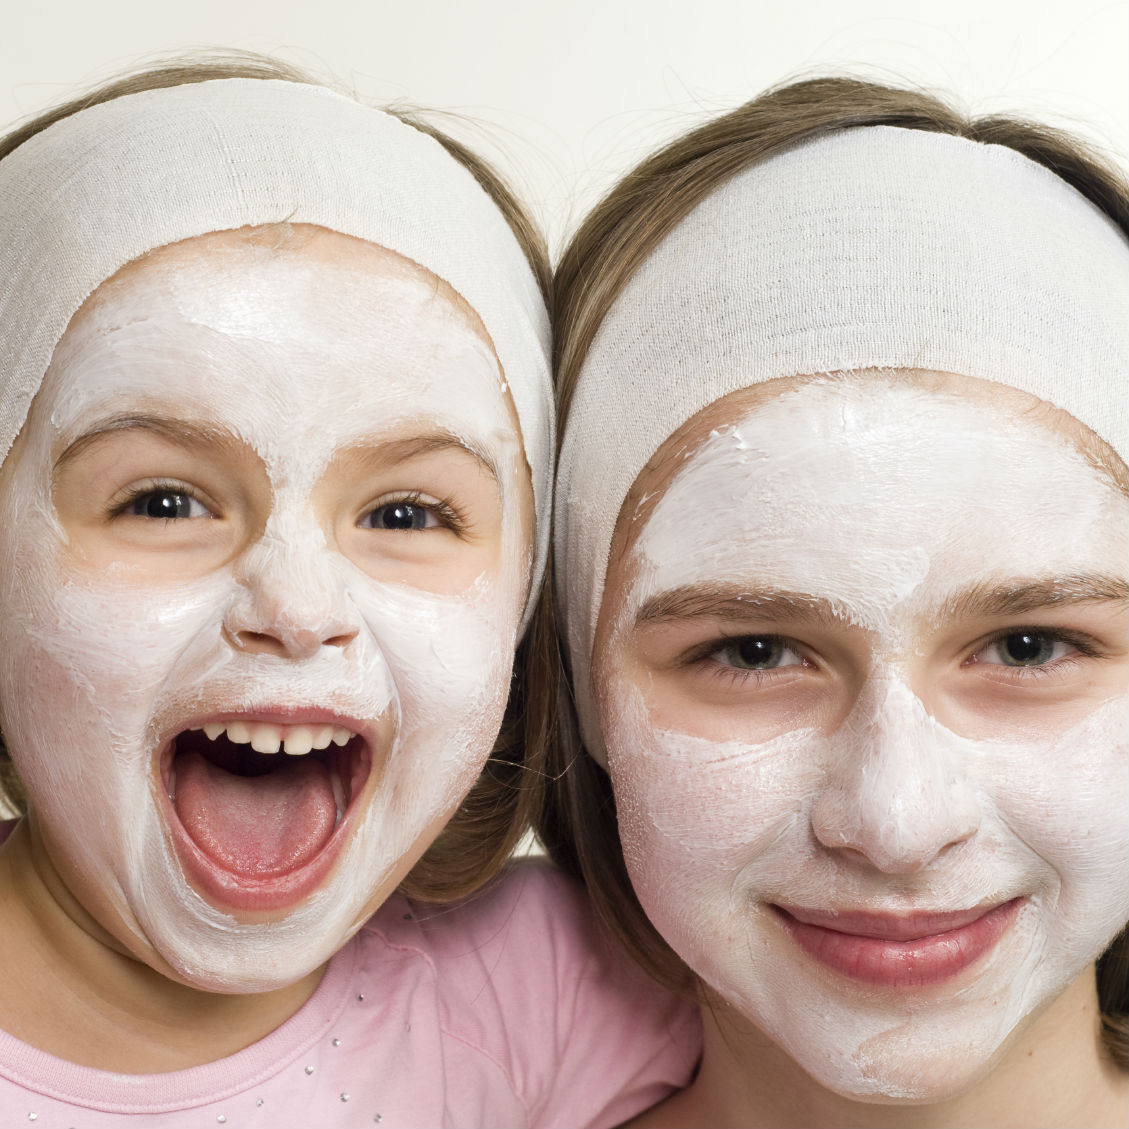 beauty treatment for teens and tweens